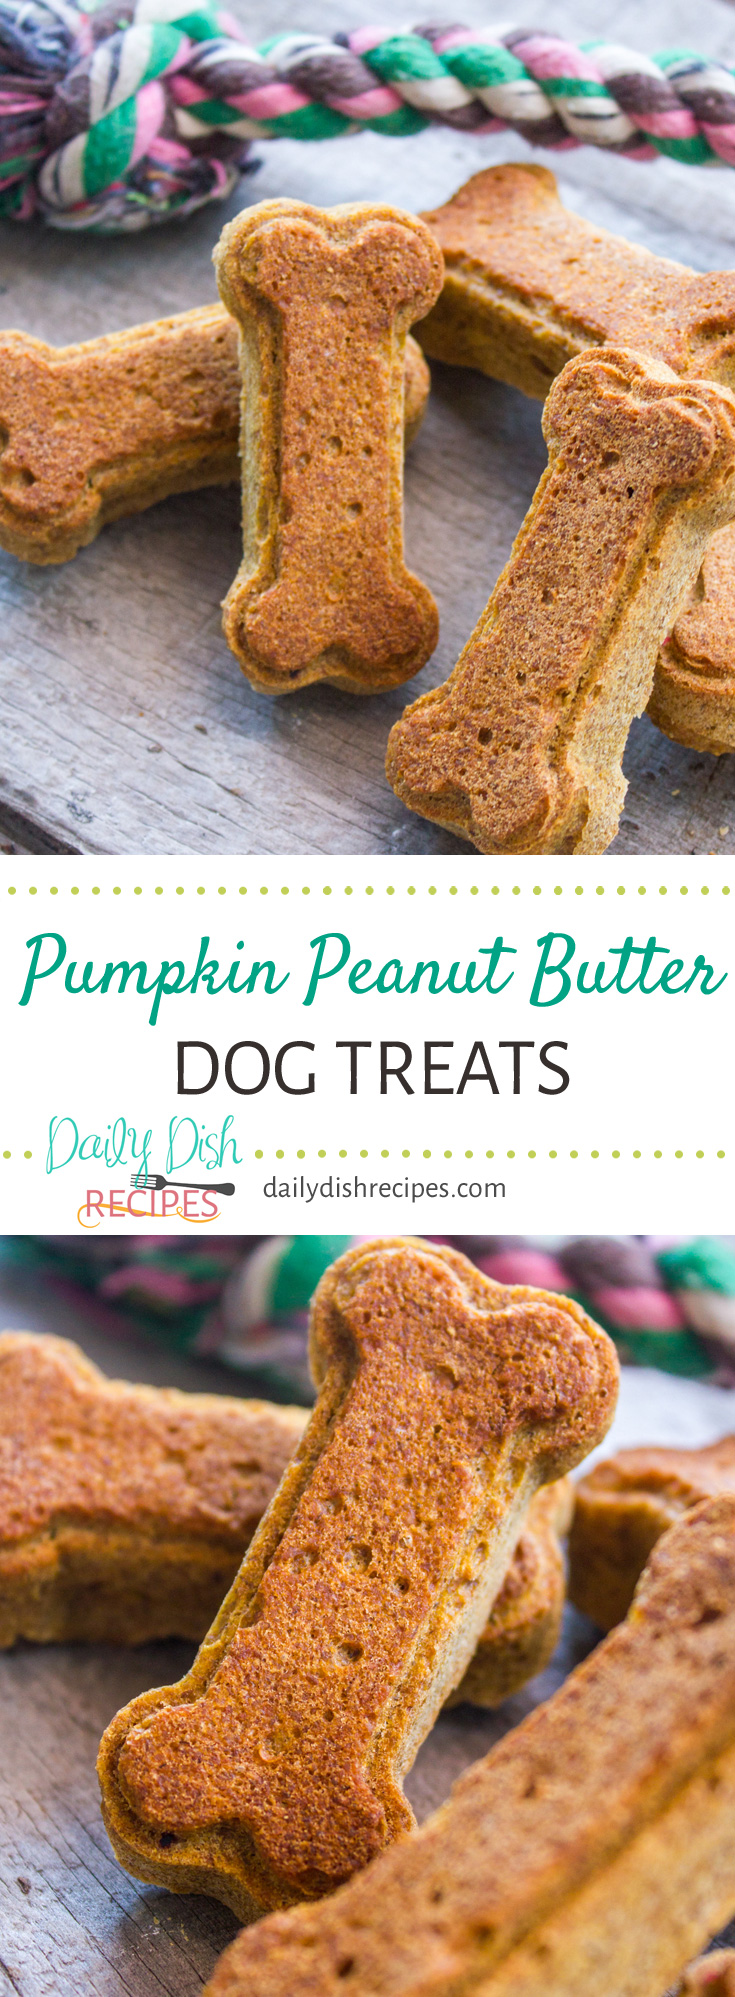 Wheat-free Pumpkin Peanut Butter Dog Treats will make your pet smile. Dogs love them and I feel good about making them healthy treats! Your pets deserve their own homemade recipes too, plus these are SO easy!